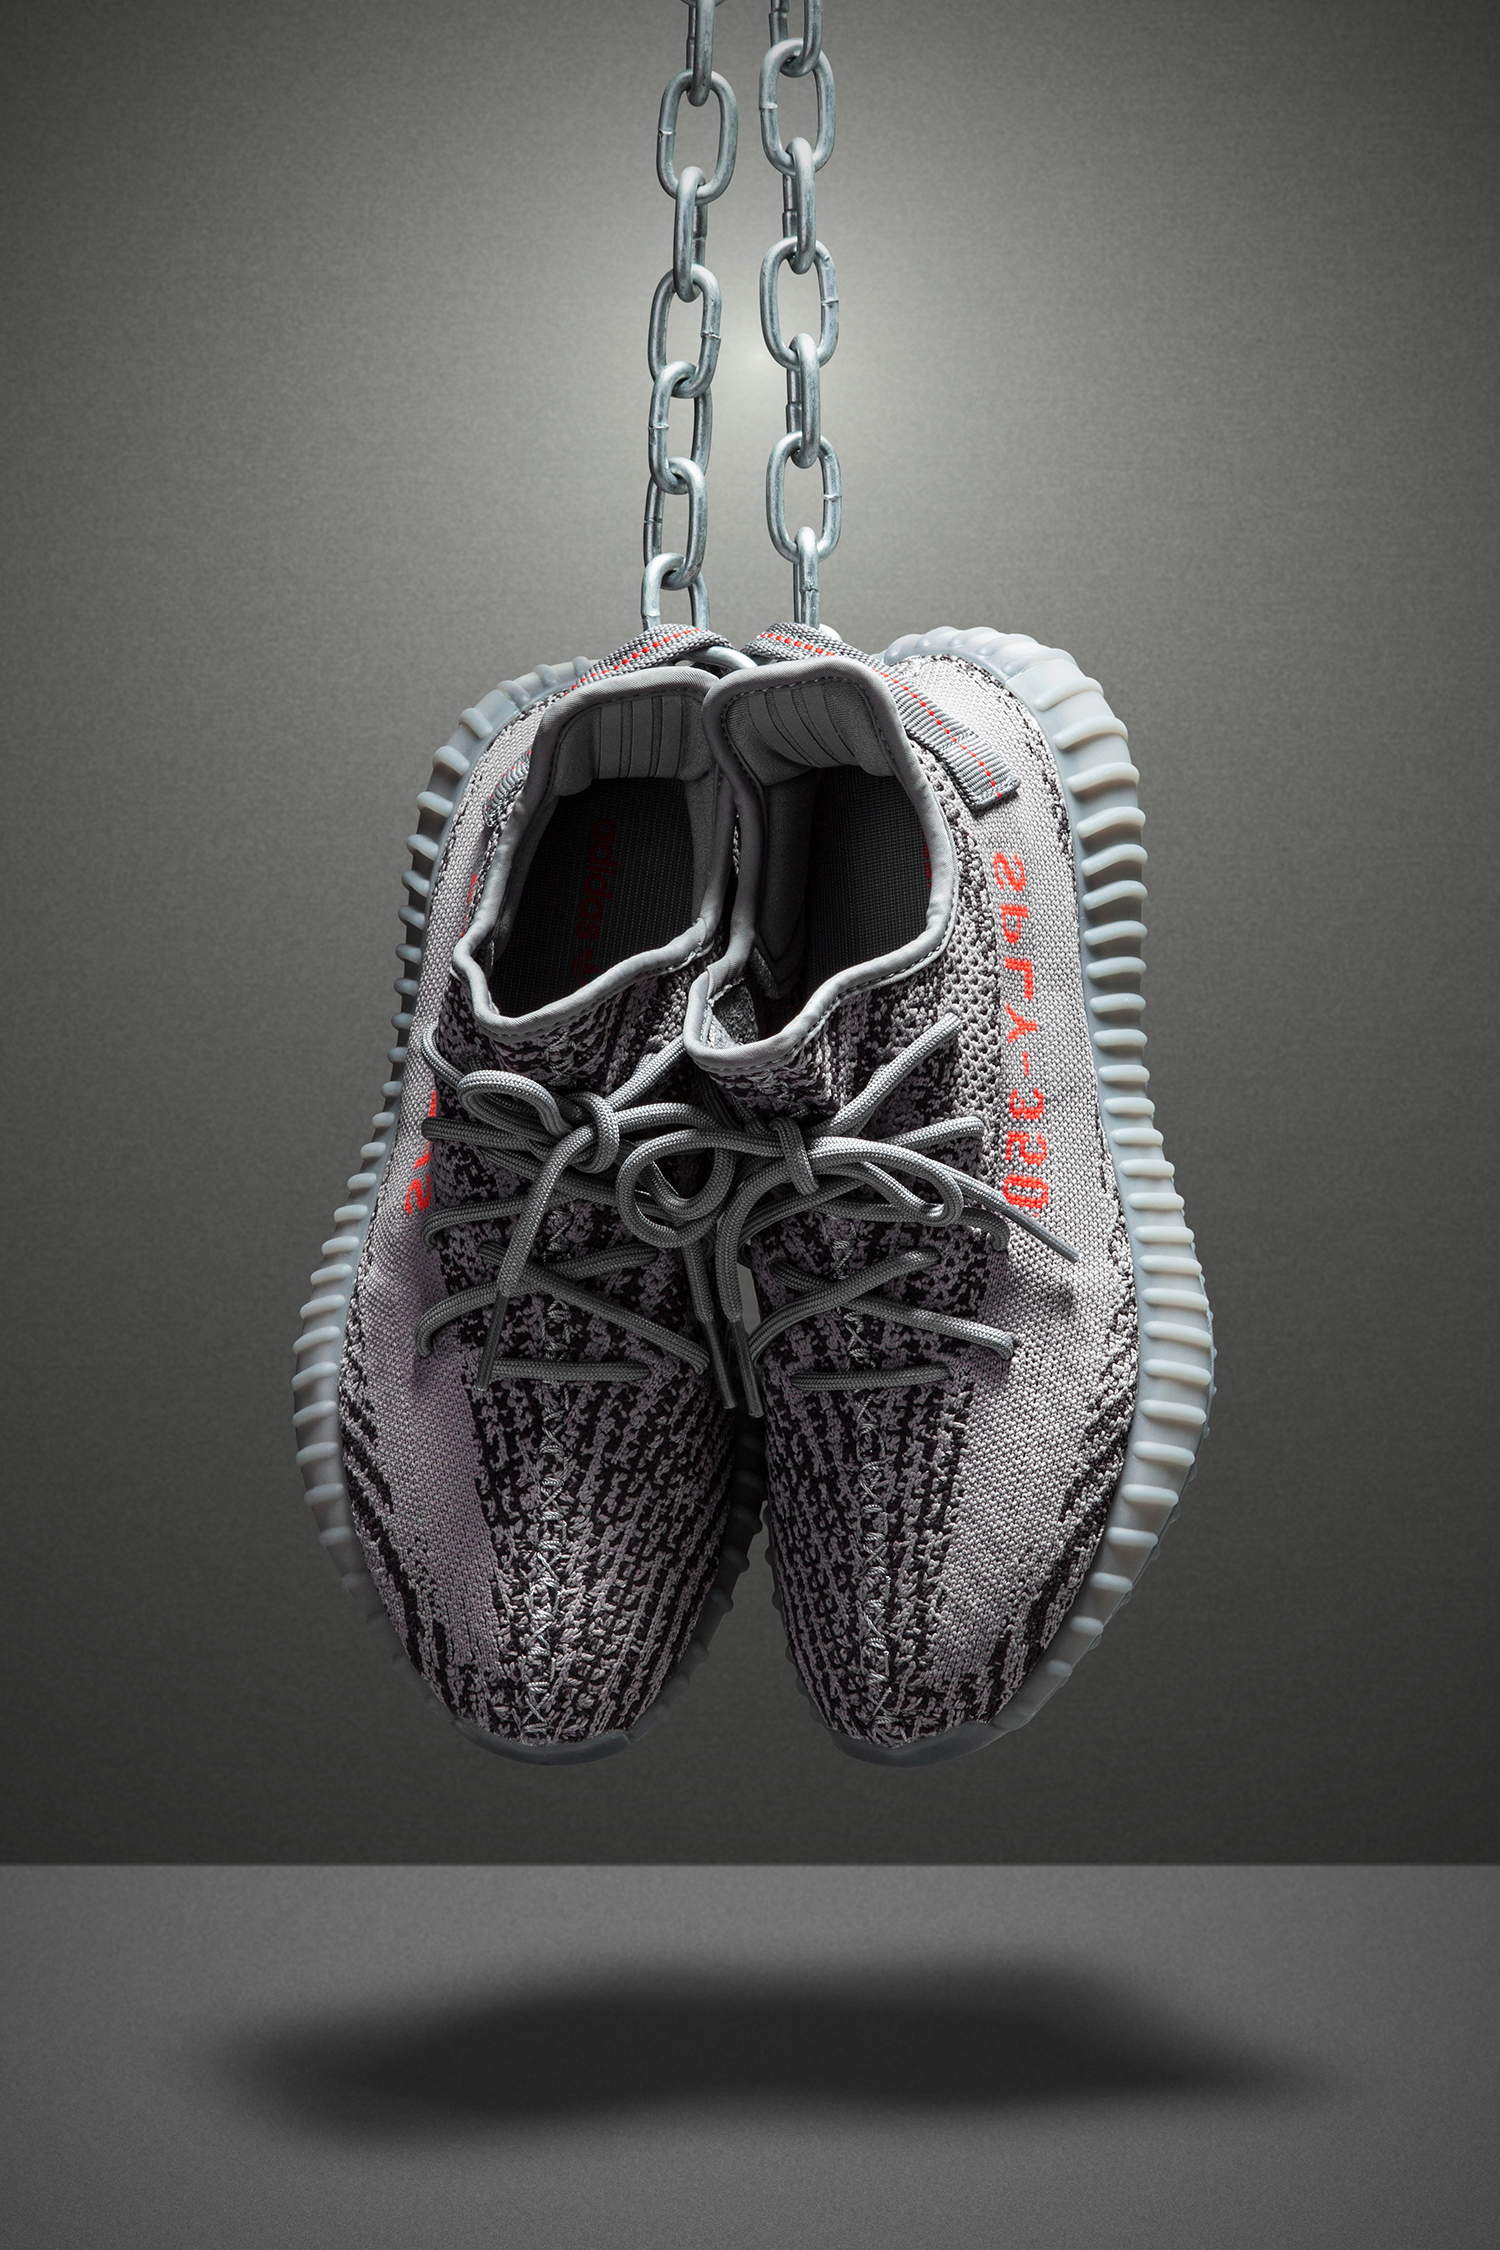 yeezy 350 v2 grey_photography by kev foster for philip browne 2.jpg